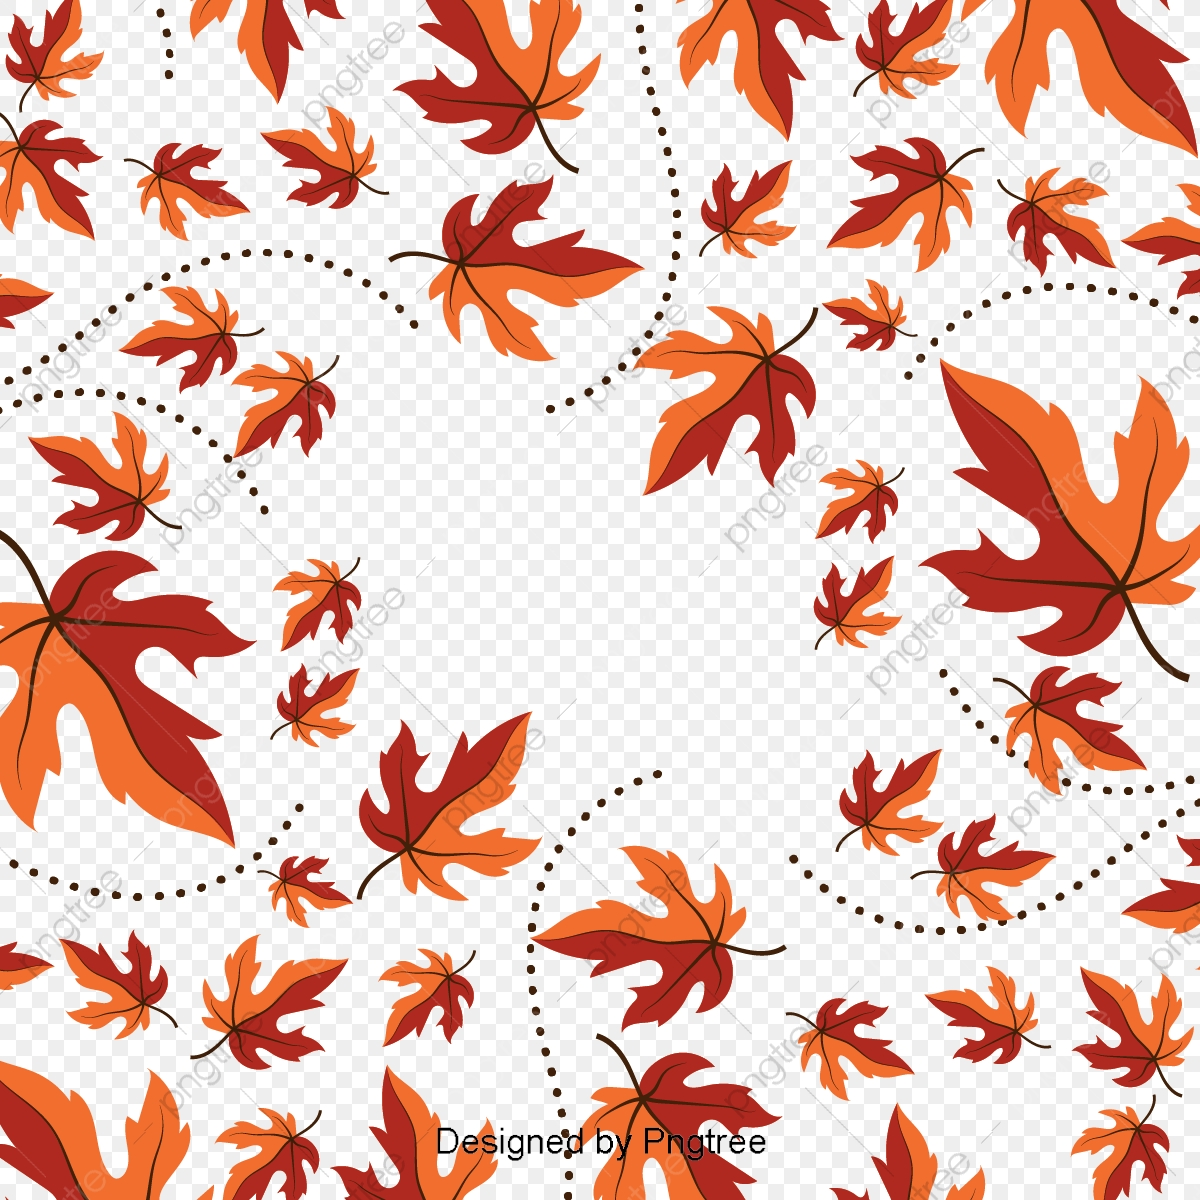 Beautiful Cartoon Cute Flat Hand Painted Autumn Leaf Wallpaper Leaf Autumn Leaves Png And Vector With Transparent Background For Free Download